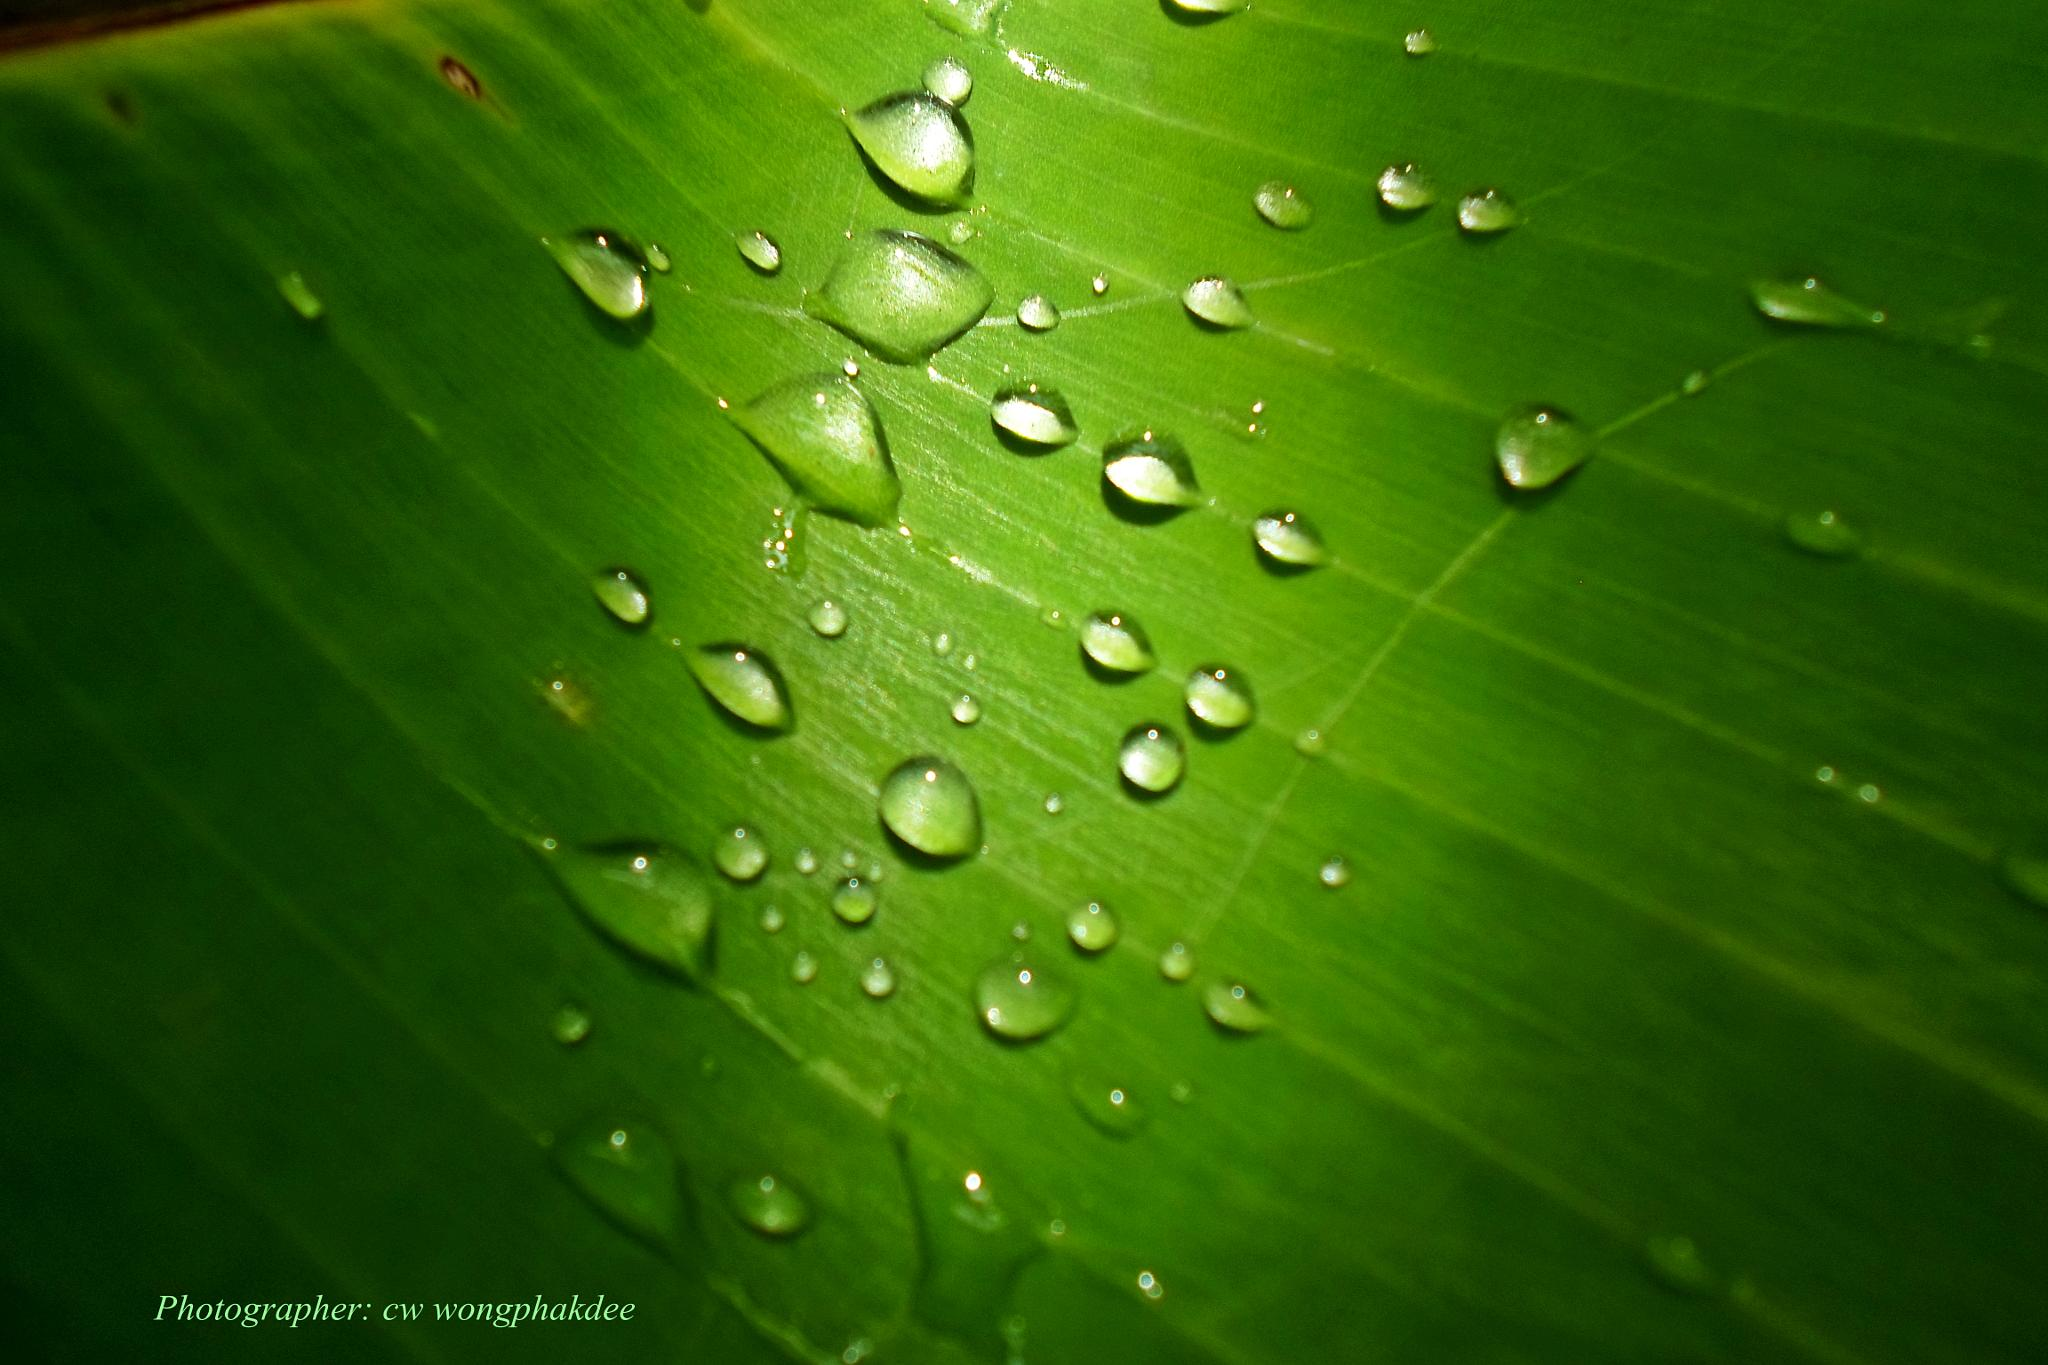 Drops on the leaf by Wongphakdee